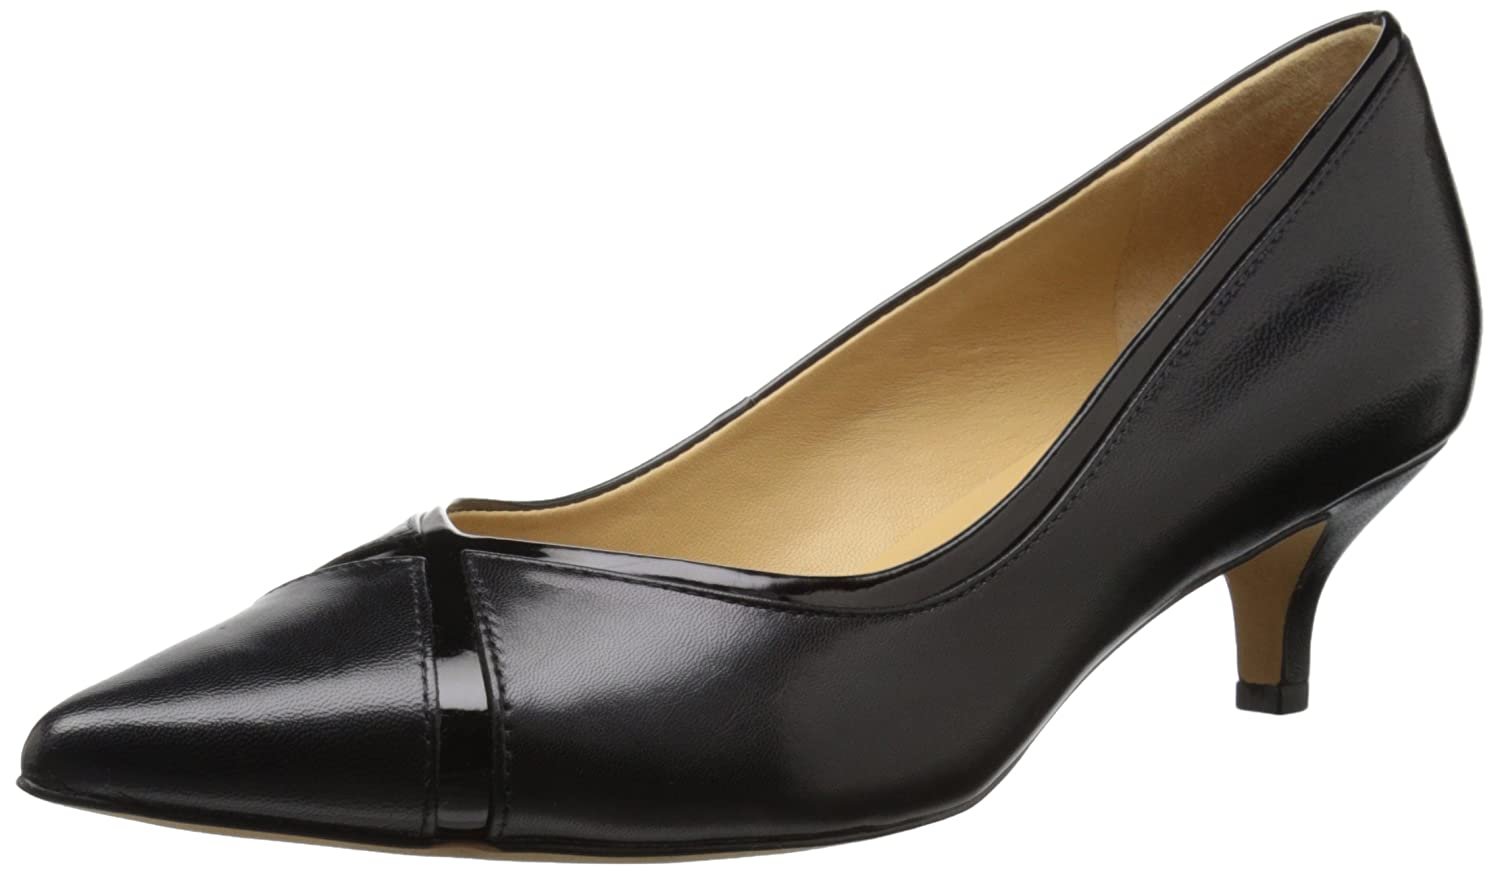 Trotters Women's Kelsey Dress Pump B011EZHDWW 10 B(M) US|Black